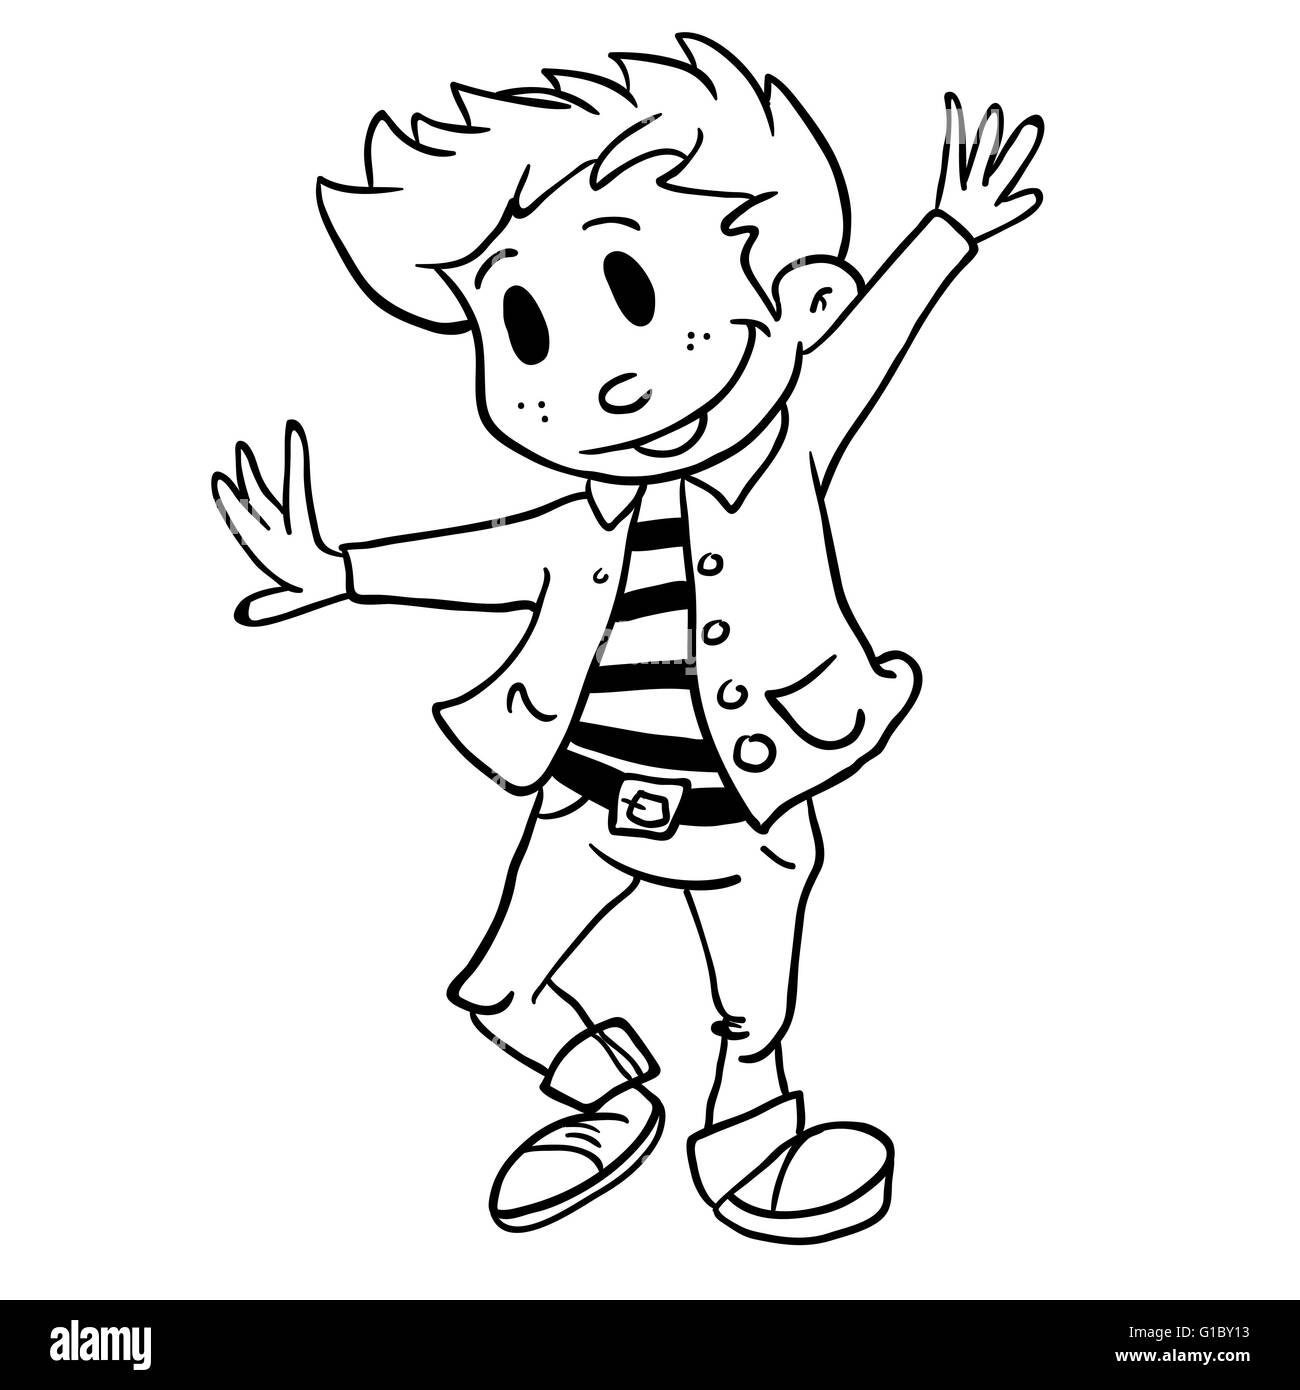 Simple Black And White Boy Dancing Cartoon